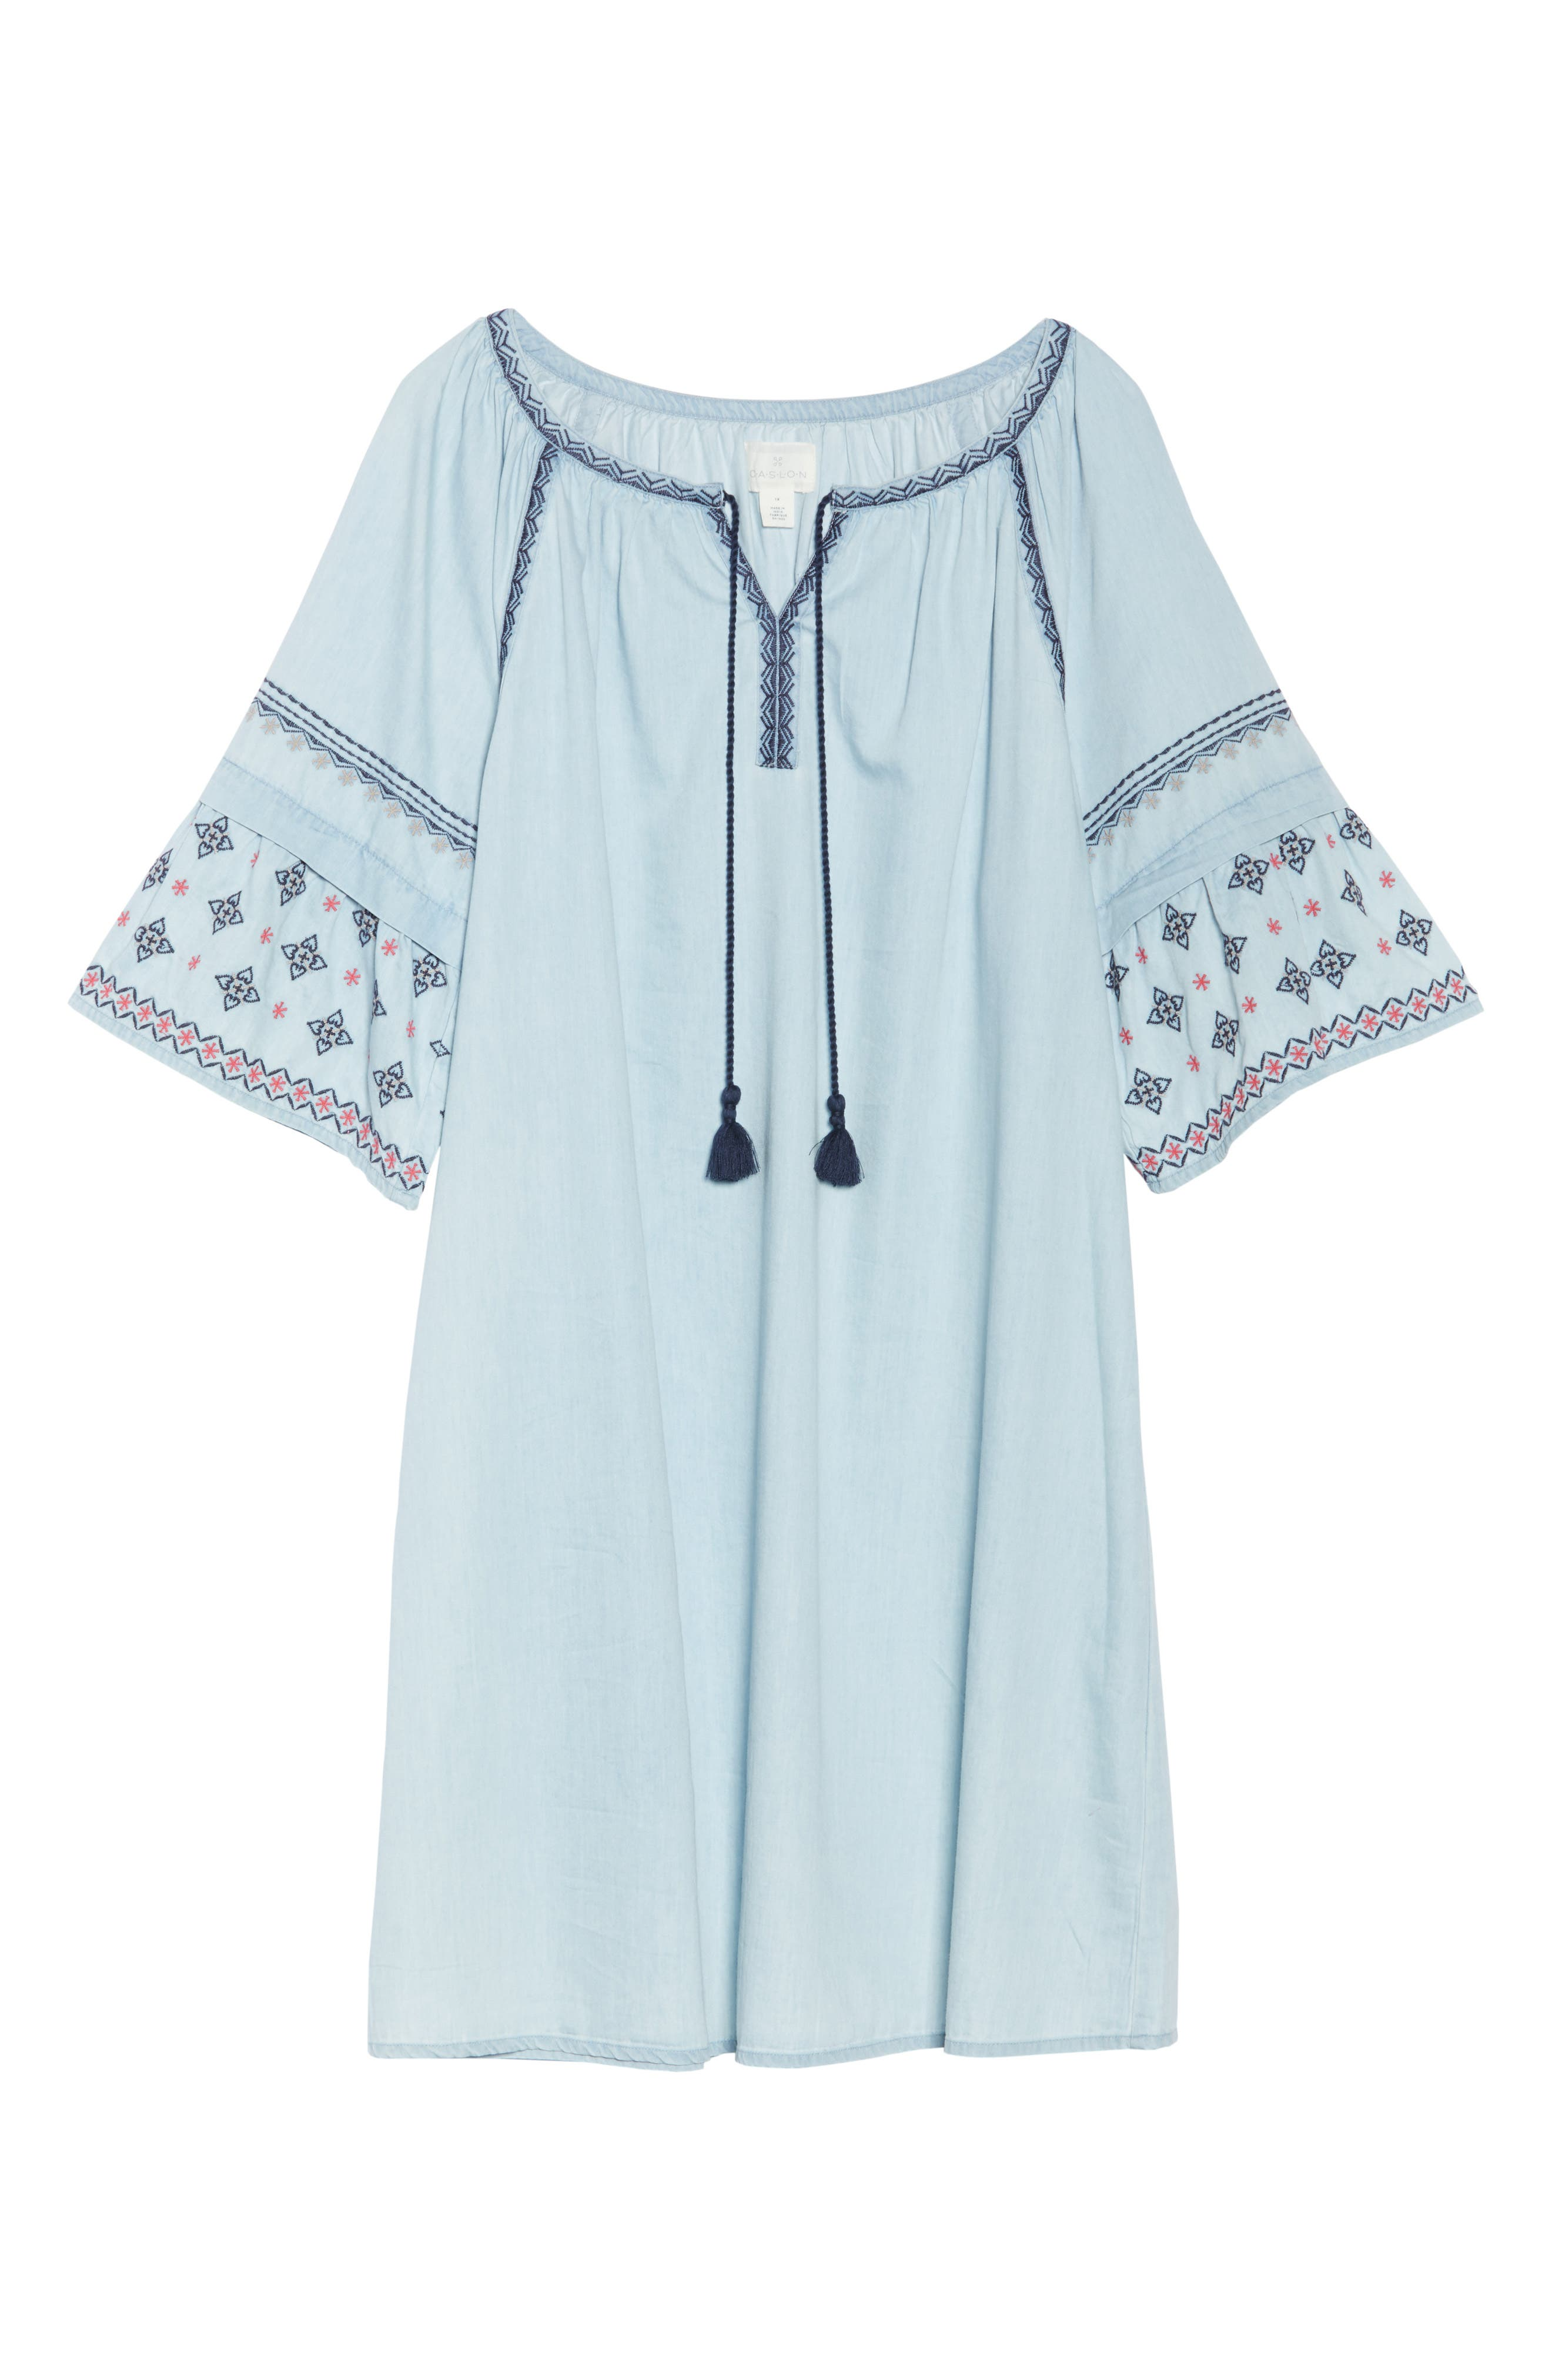 Embroidered Chambray Dress,                             Alternate thumbnail 6, color,                             Spectrum Wash